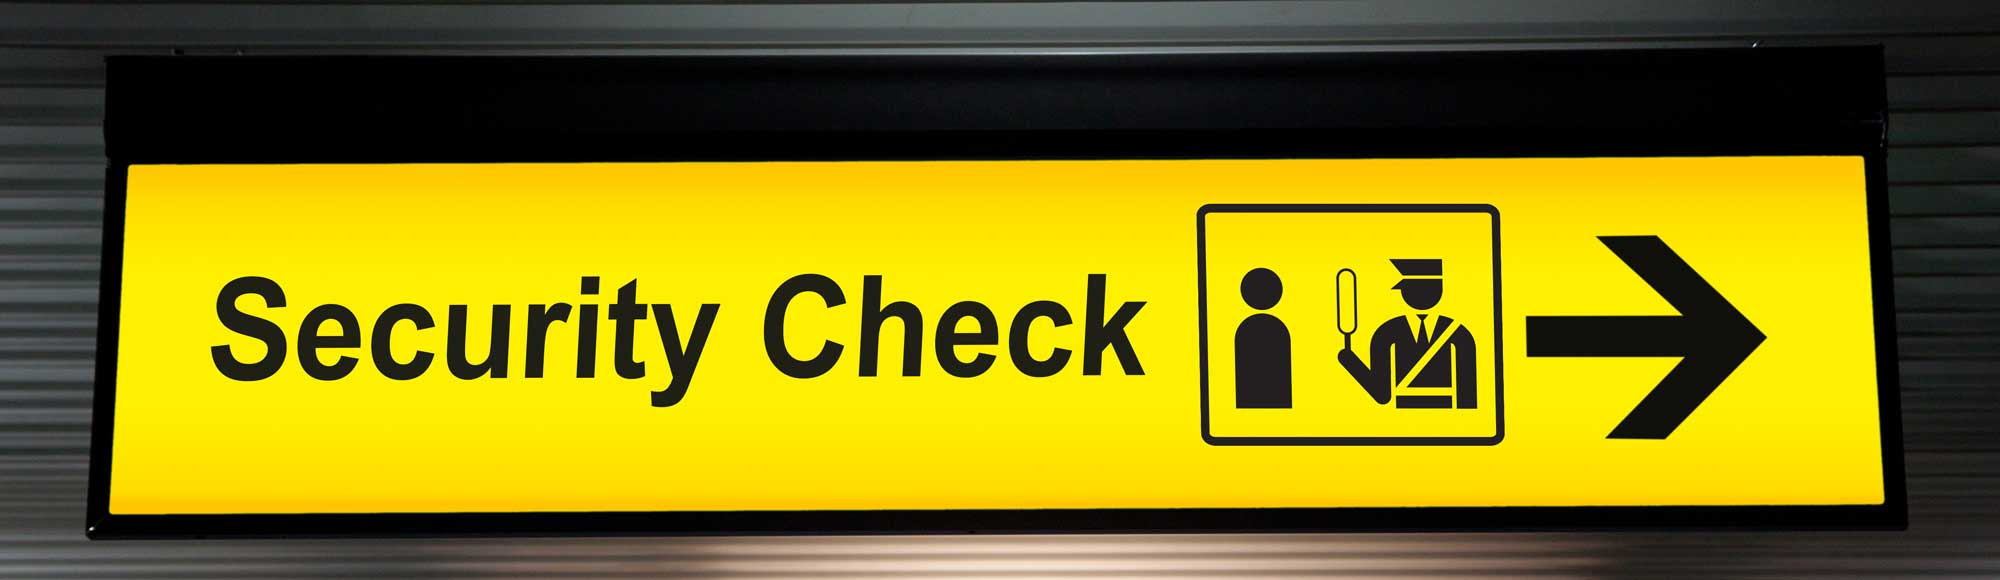 Airport Checkin Sign